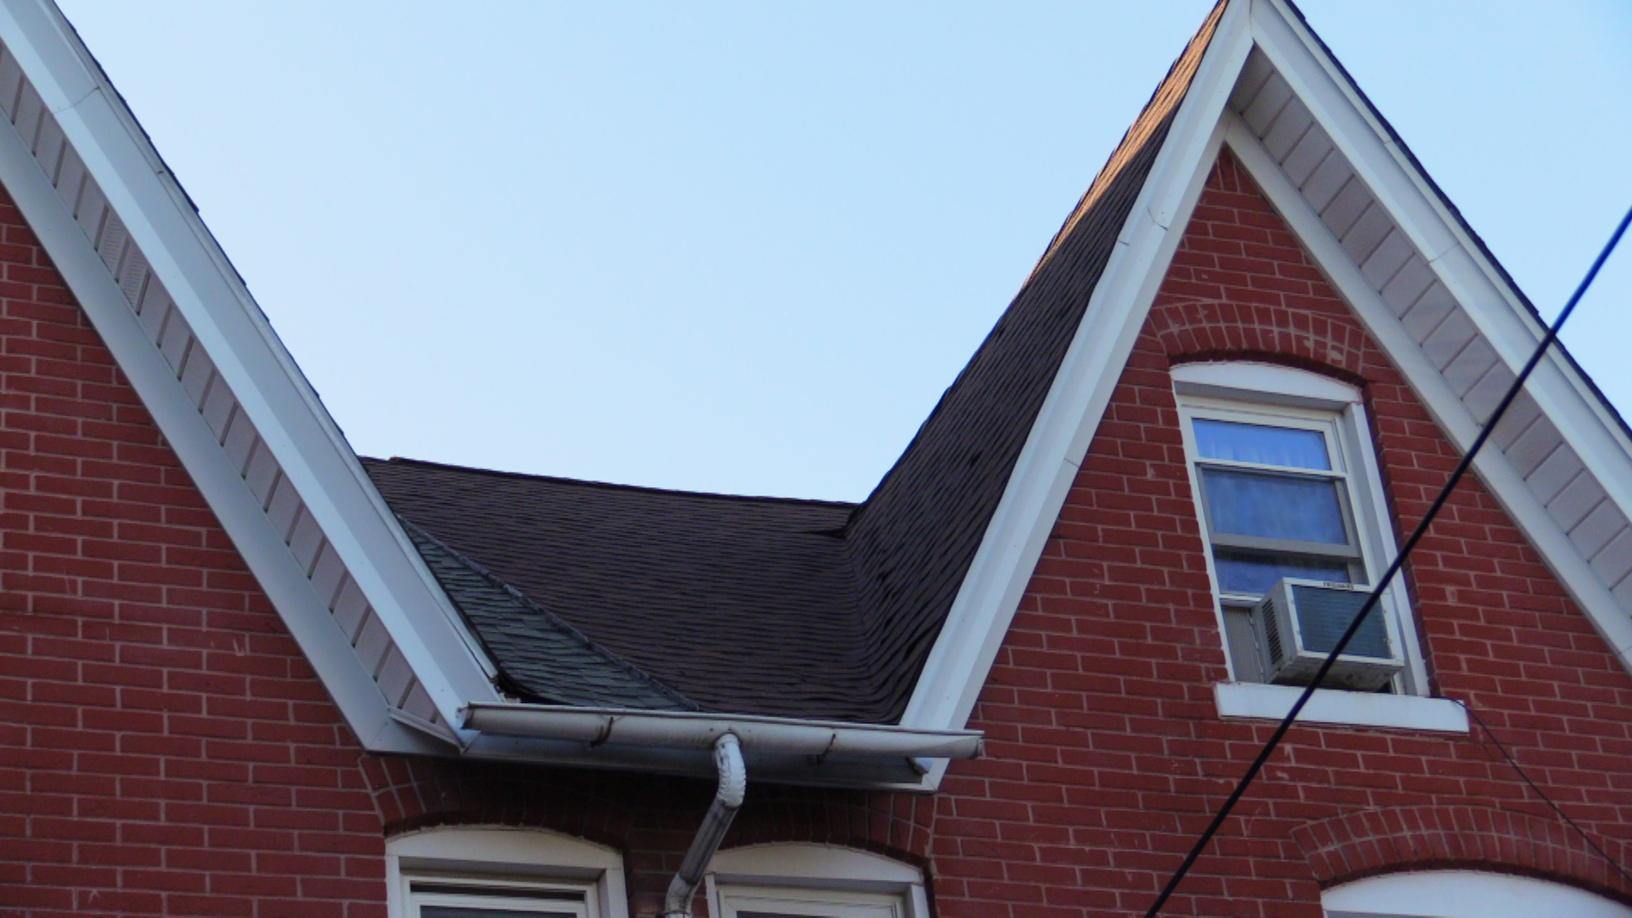 New Roofing in Quakertown, Pennsylvania - After Photo